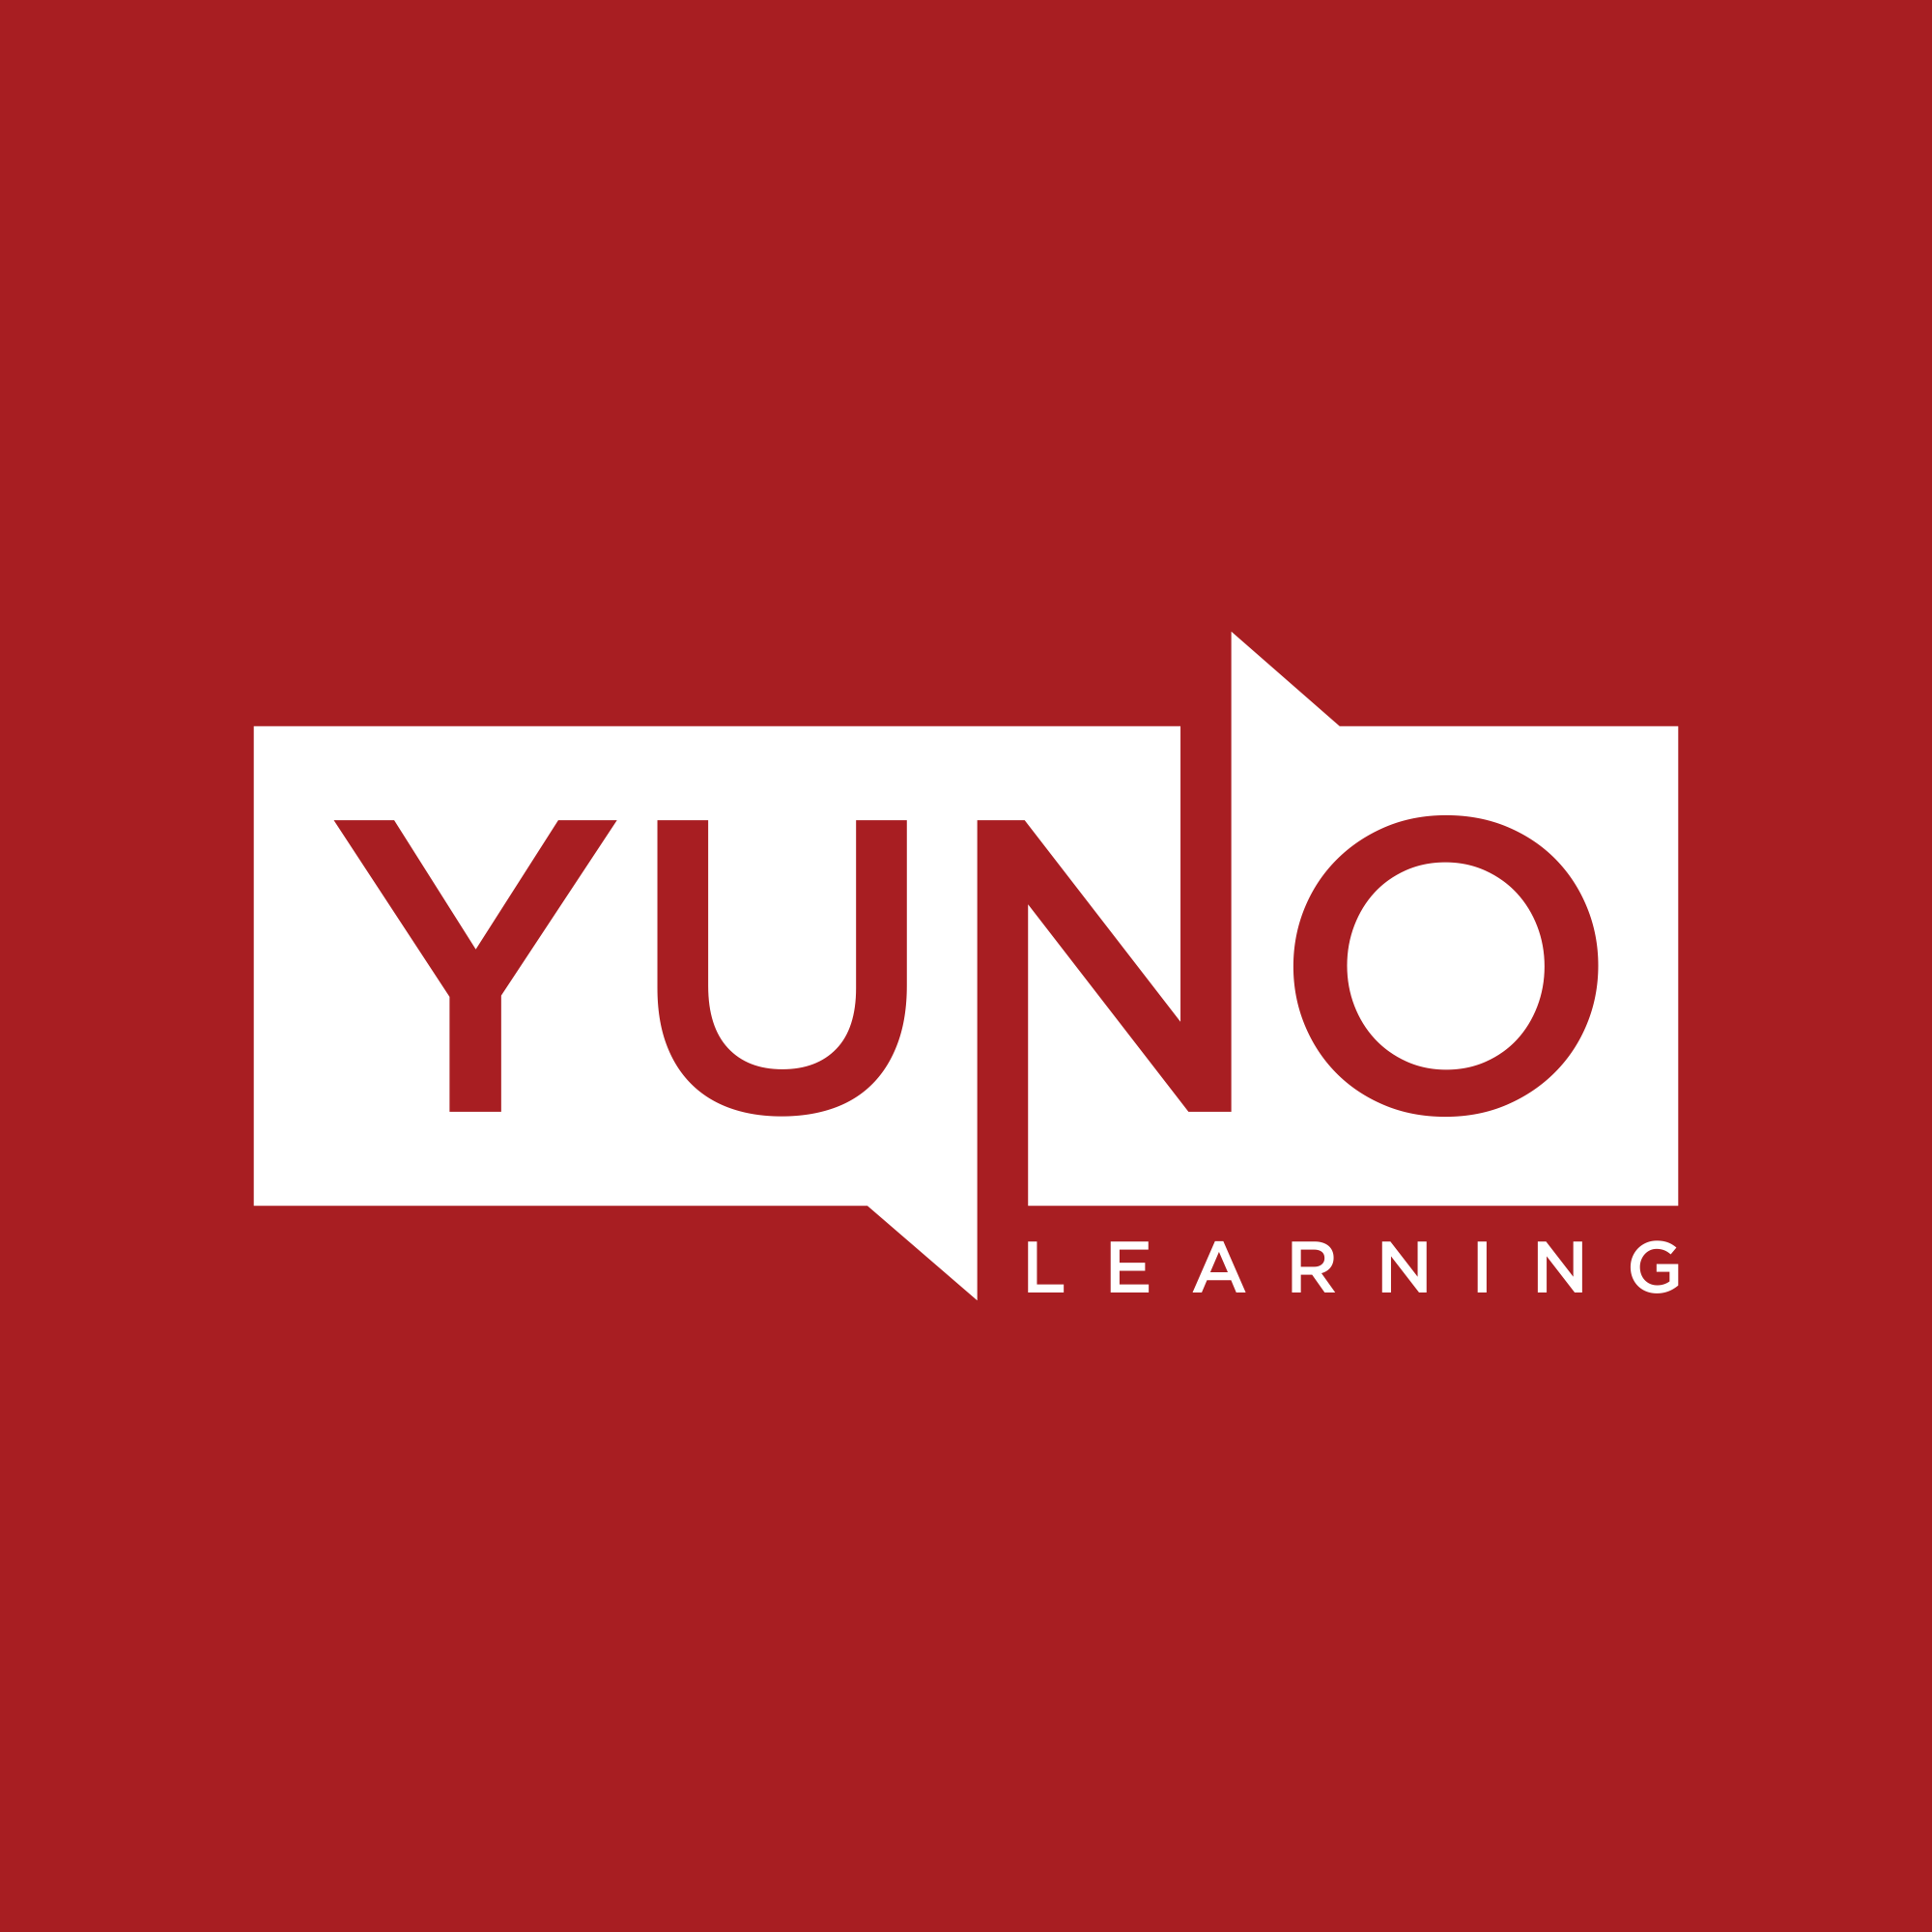 Yuno Learning Logo